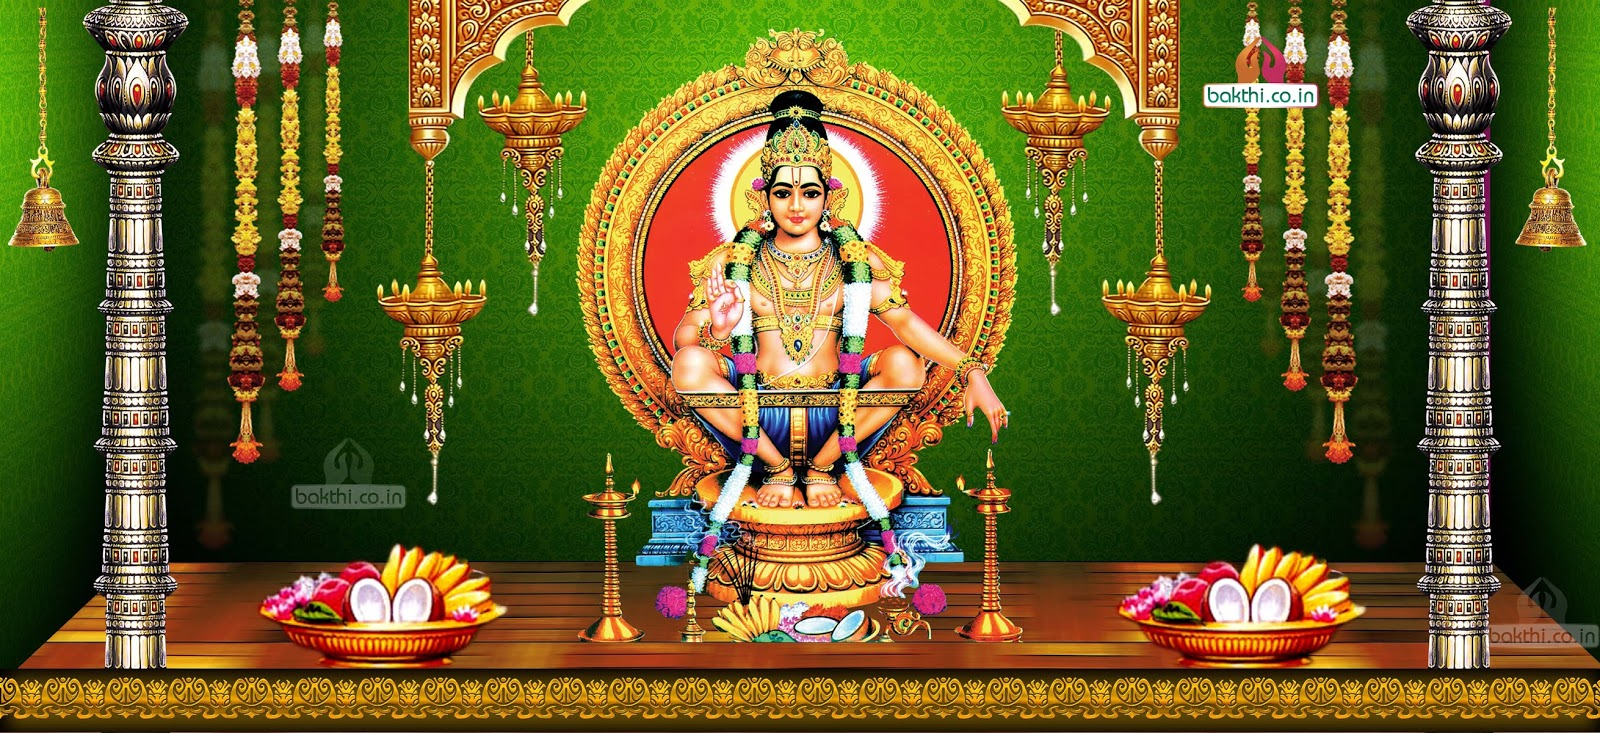 Lord Ayyappa Images Hd Wallpapers ✓ The Best HD Wallpaper